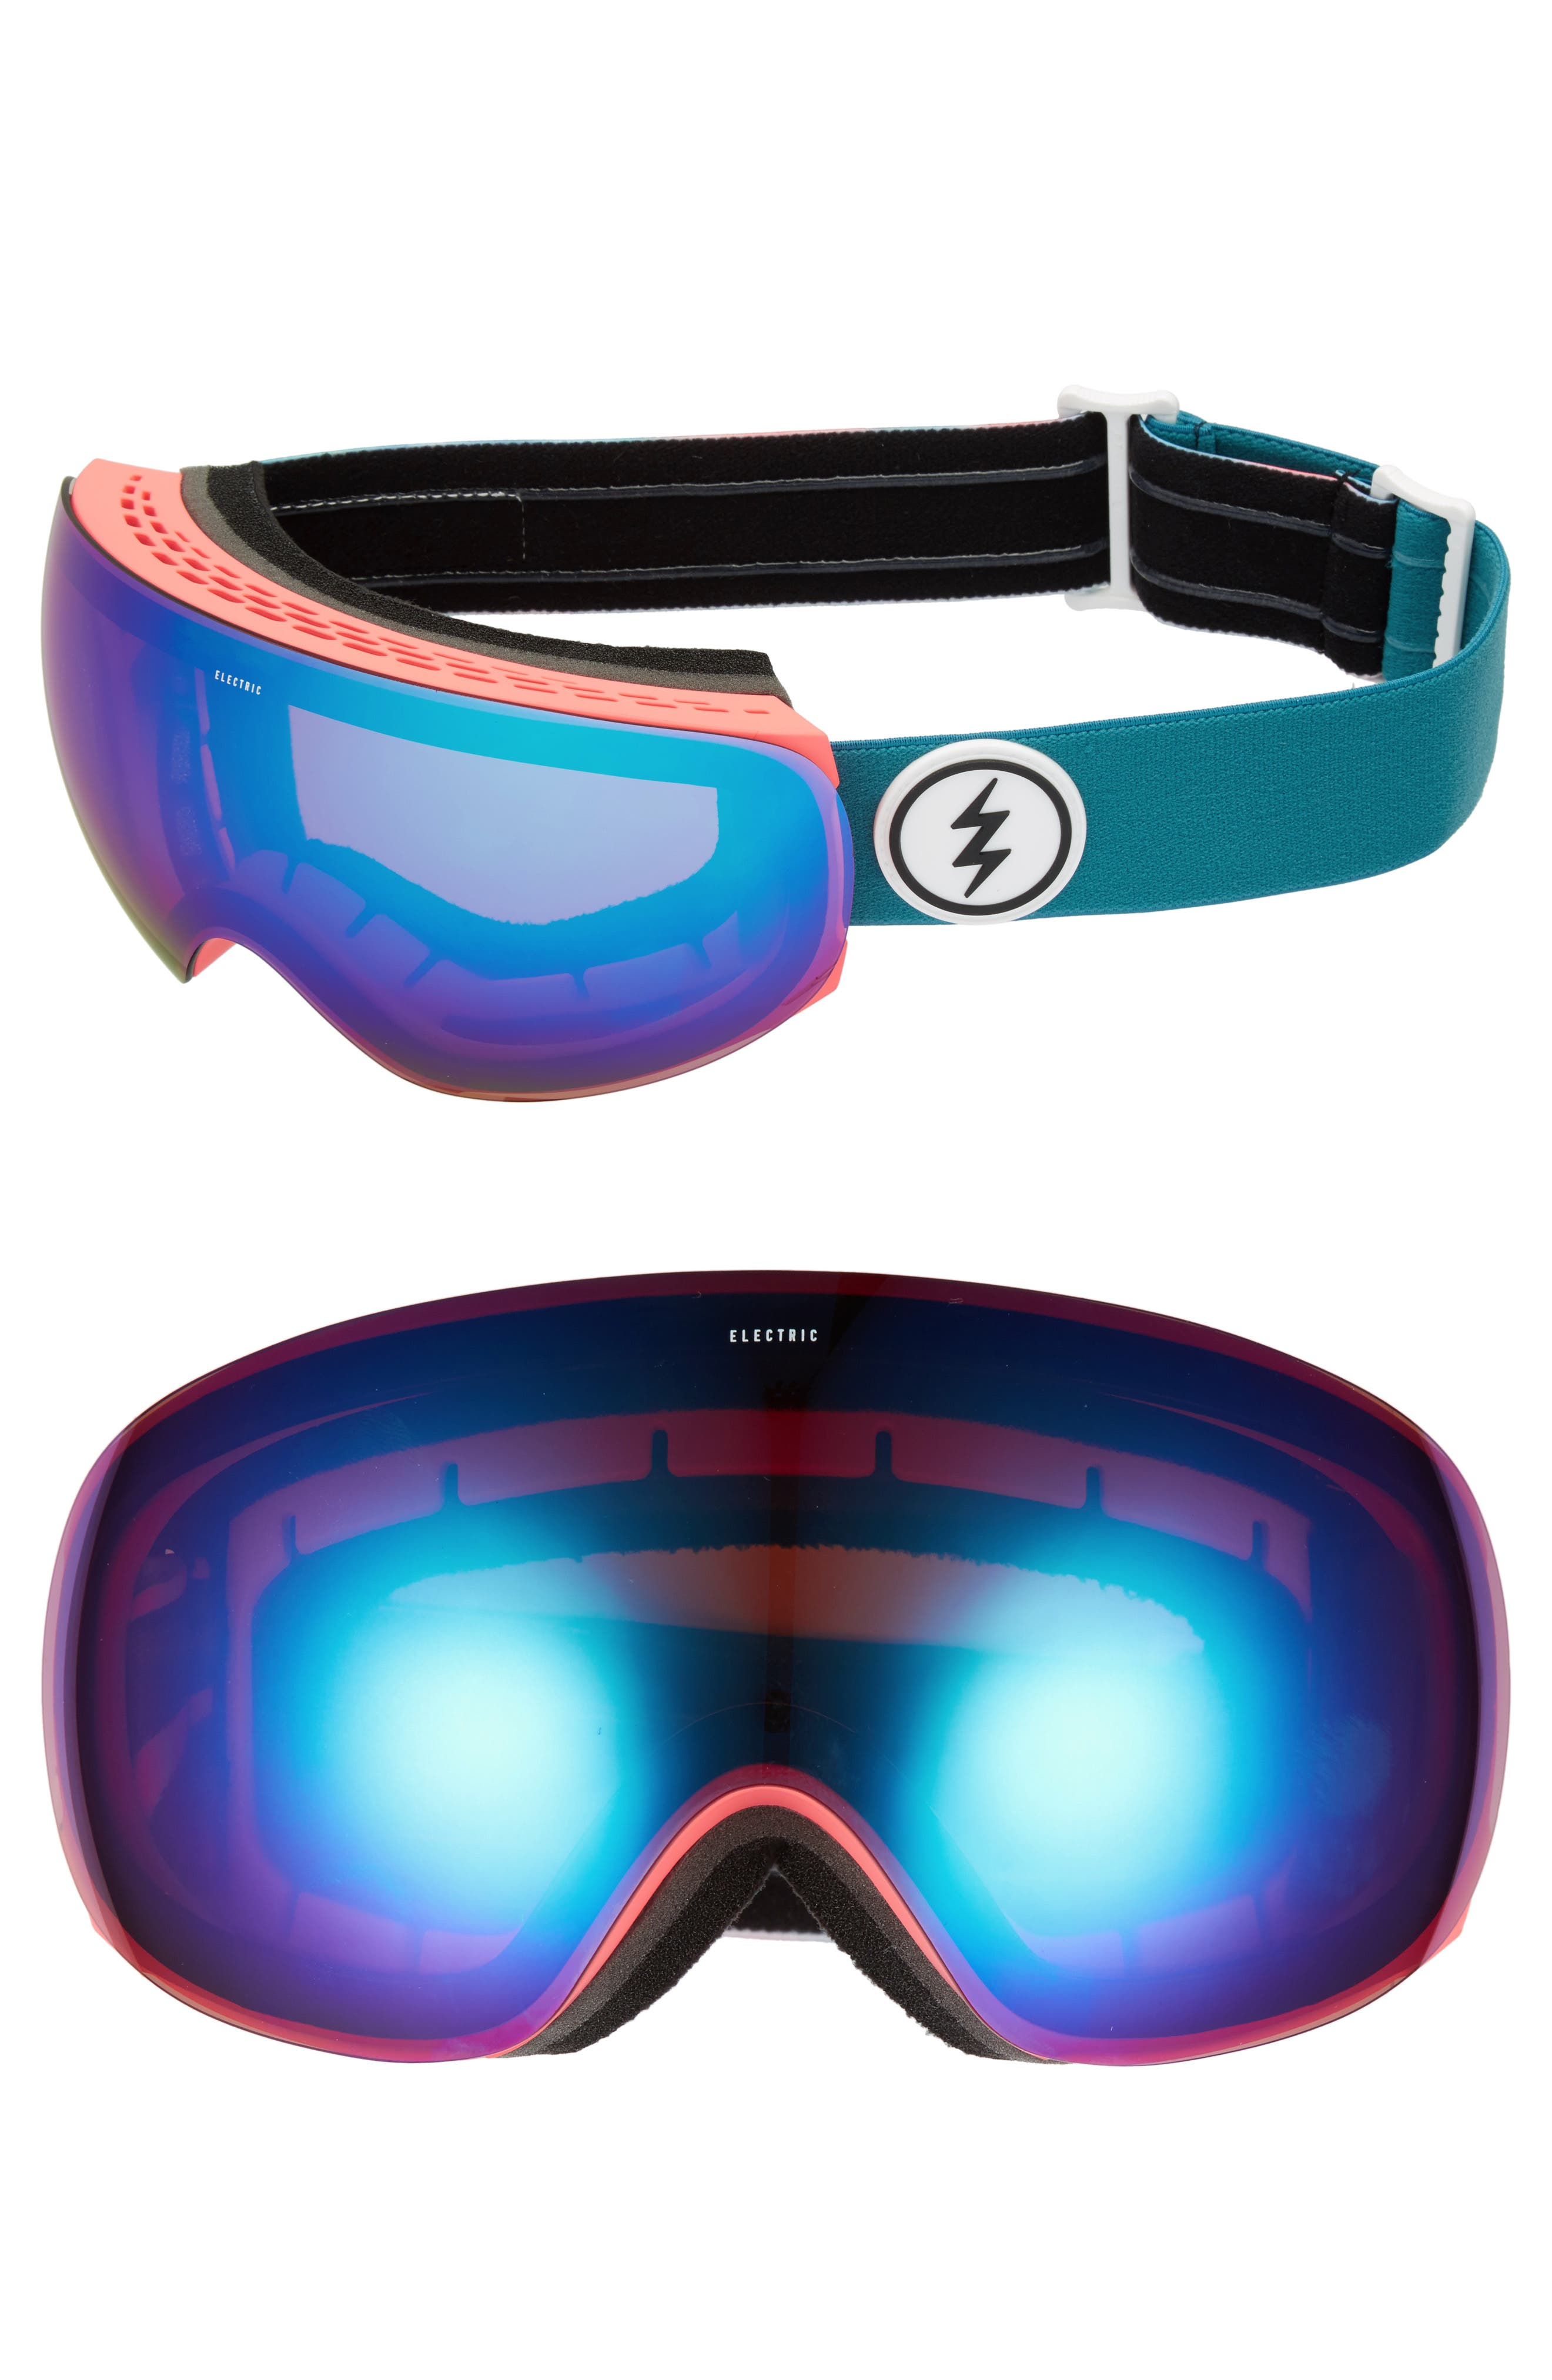 Alternate Image 1 Selected - ELECTRIC EG3.5 Snow Goggles